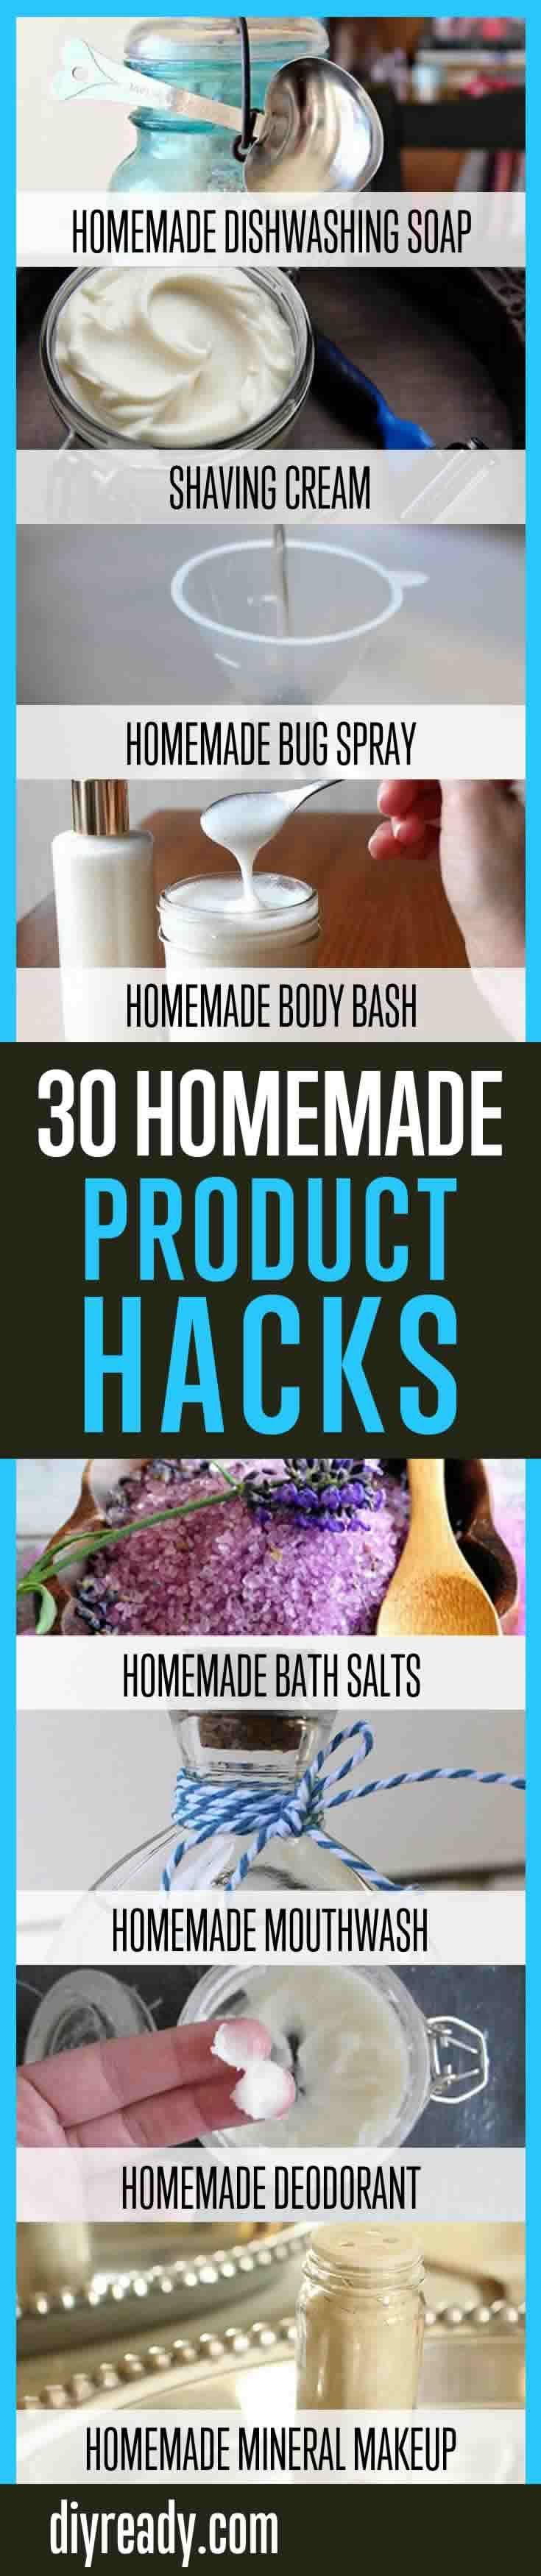 http   diyready com    homemade household product hacks never buy these products again  You By Cleaning At Will Home Again Hacks fitflops Ready  Household Make Product Homemade cha Never Buy cha Products DIY      Can You